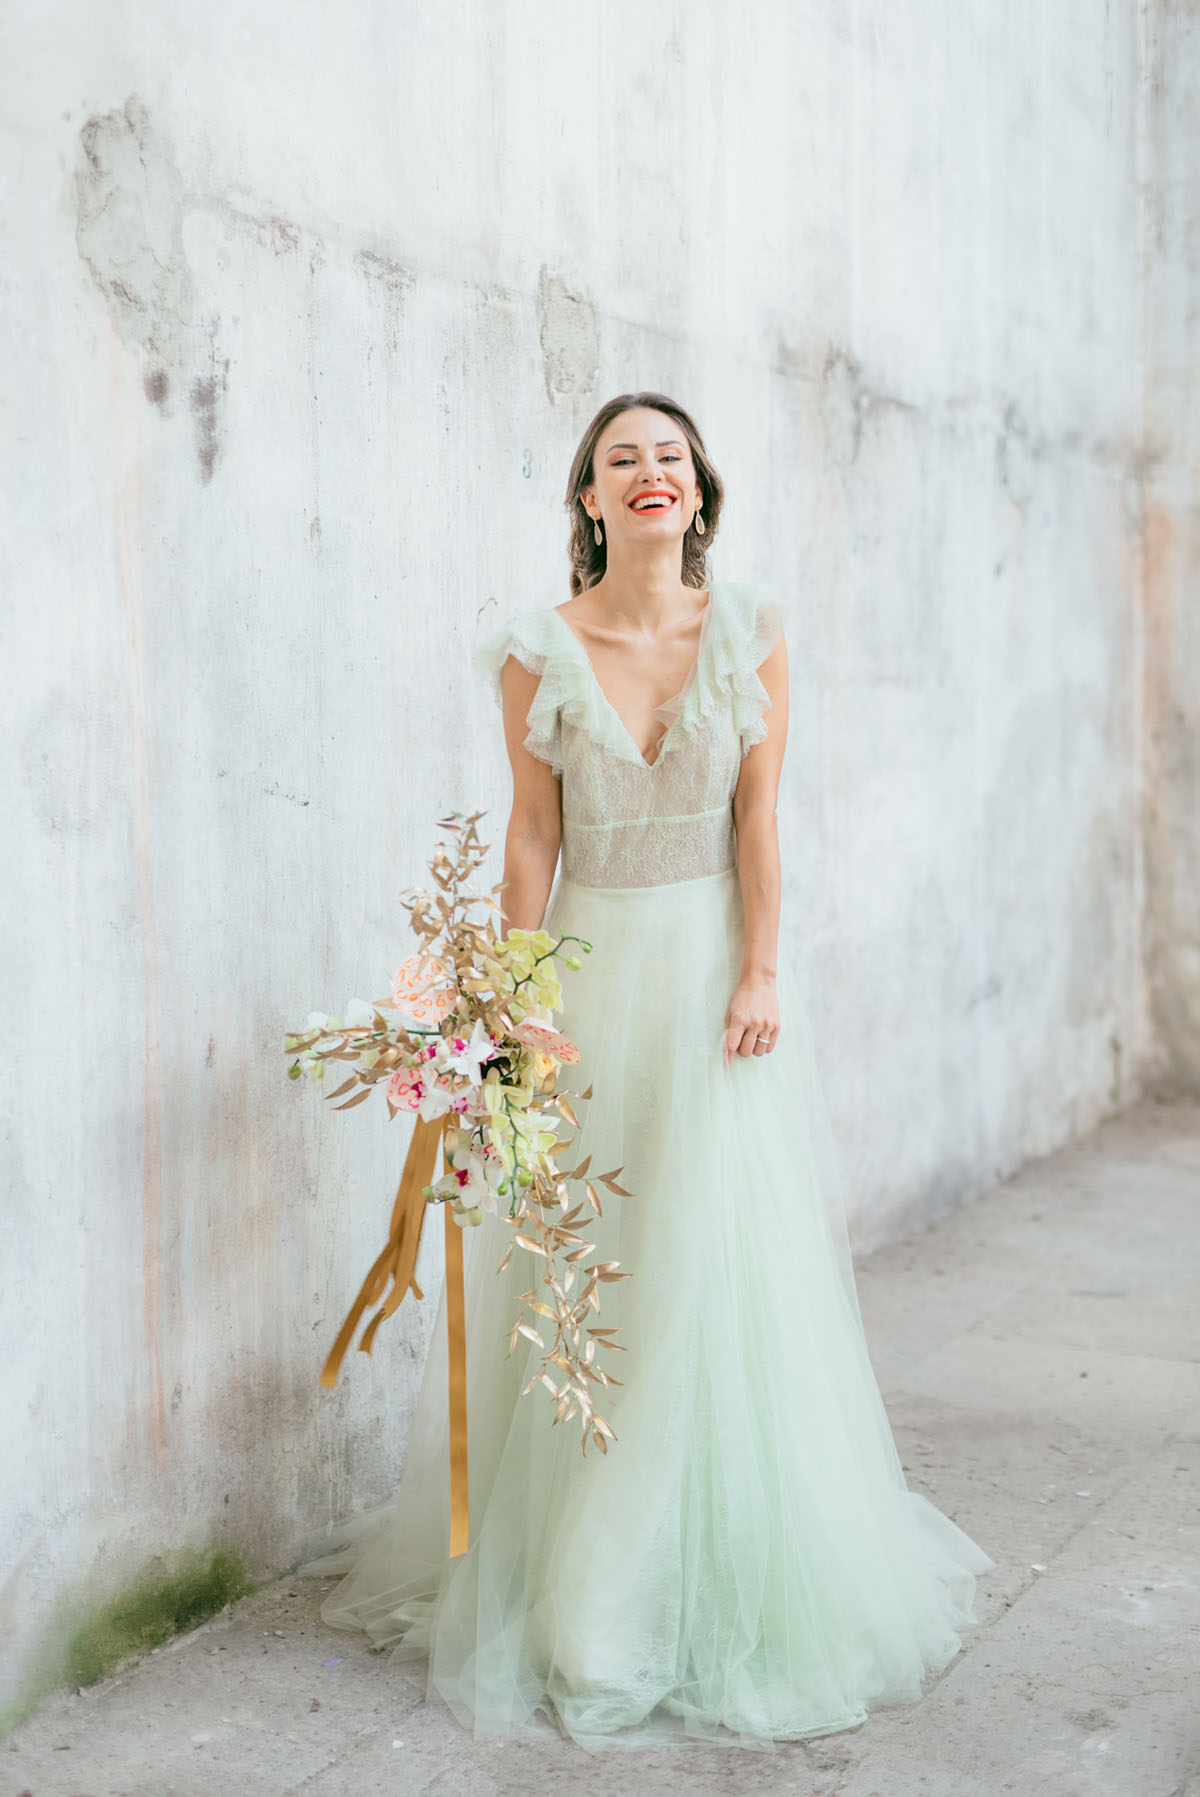 One bride was wearing a light mint A-line wedding dress with a ruffled neckline and a layered skirt